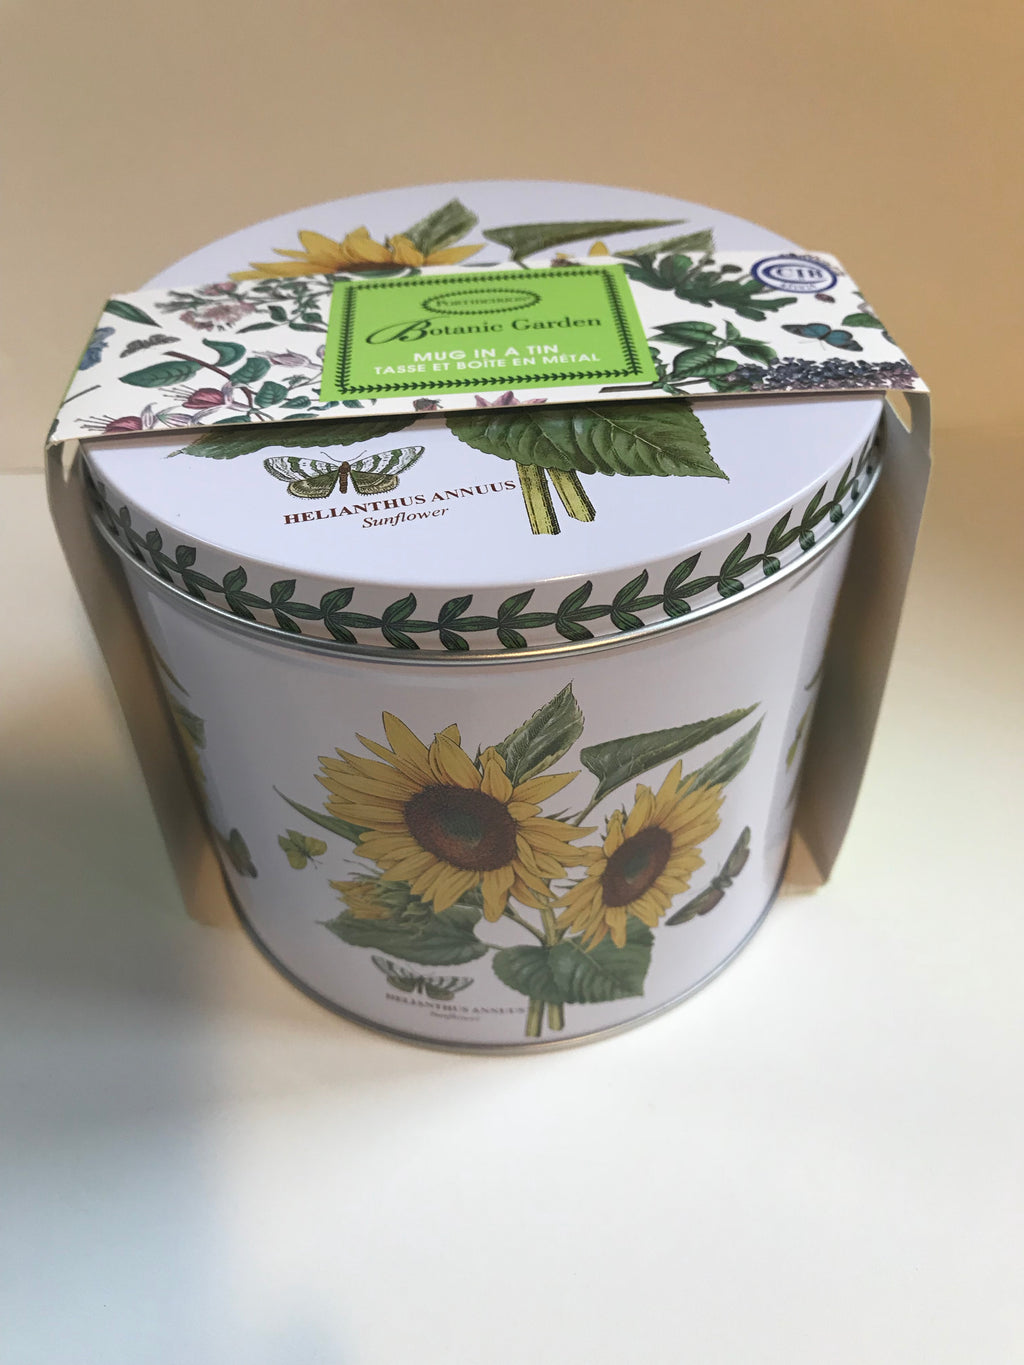 Portmeirion Botanic Garden Mug in a Tin( Sunflower)